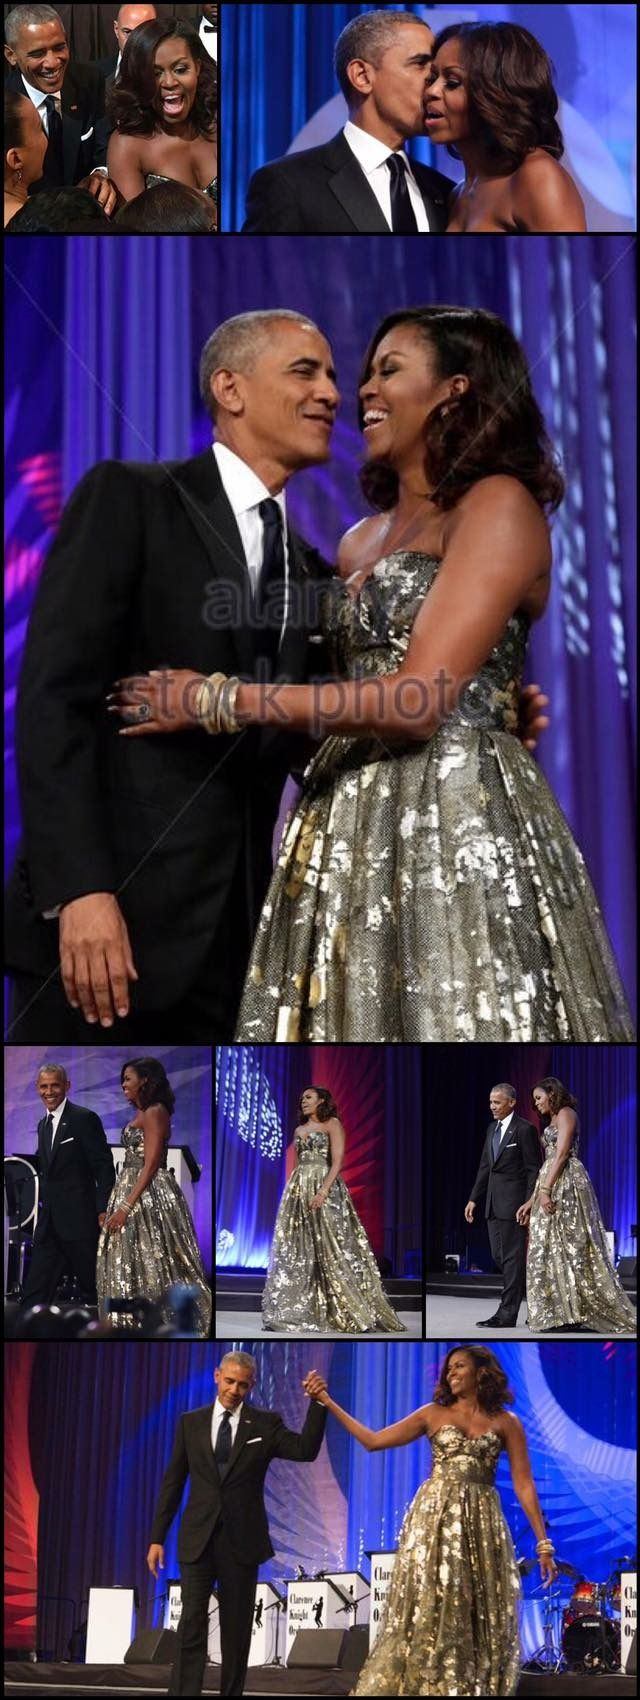 "September 18, 2016 #FINAL CONGRESSIONAL BLACK CAUCUS AWARD DINNER First Lady Michelle Obama Stuns in Gold at Congressional Black Caucus Awards Dinner *""President Obama said ""I've been so blessed to have a wife and a partner on this journey who makes it look so easy,"" he told the attendees, adding that Michelle has always been ""so strong and so honest and so beautiful and so smart."" #44thPresident #POTUS Of The United States Of America Commander In Chief #BarackObama"